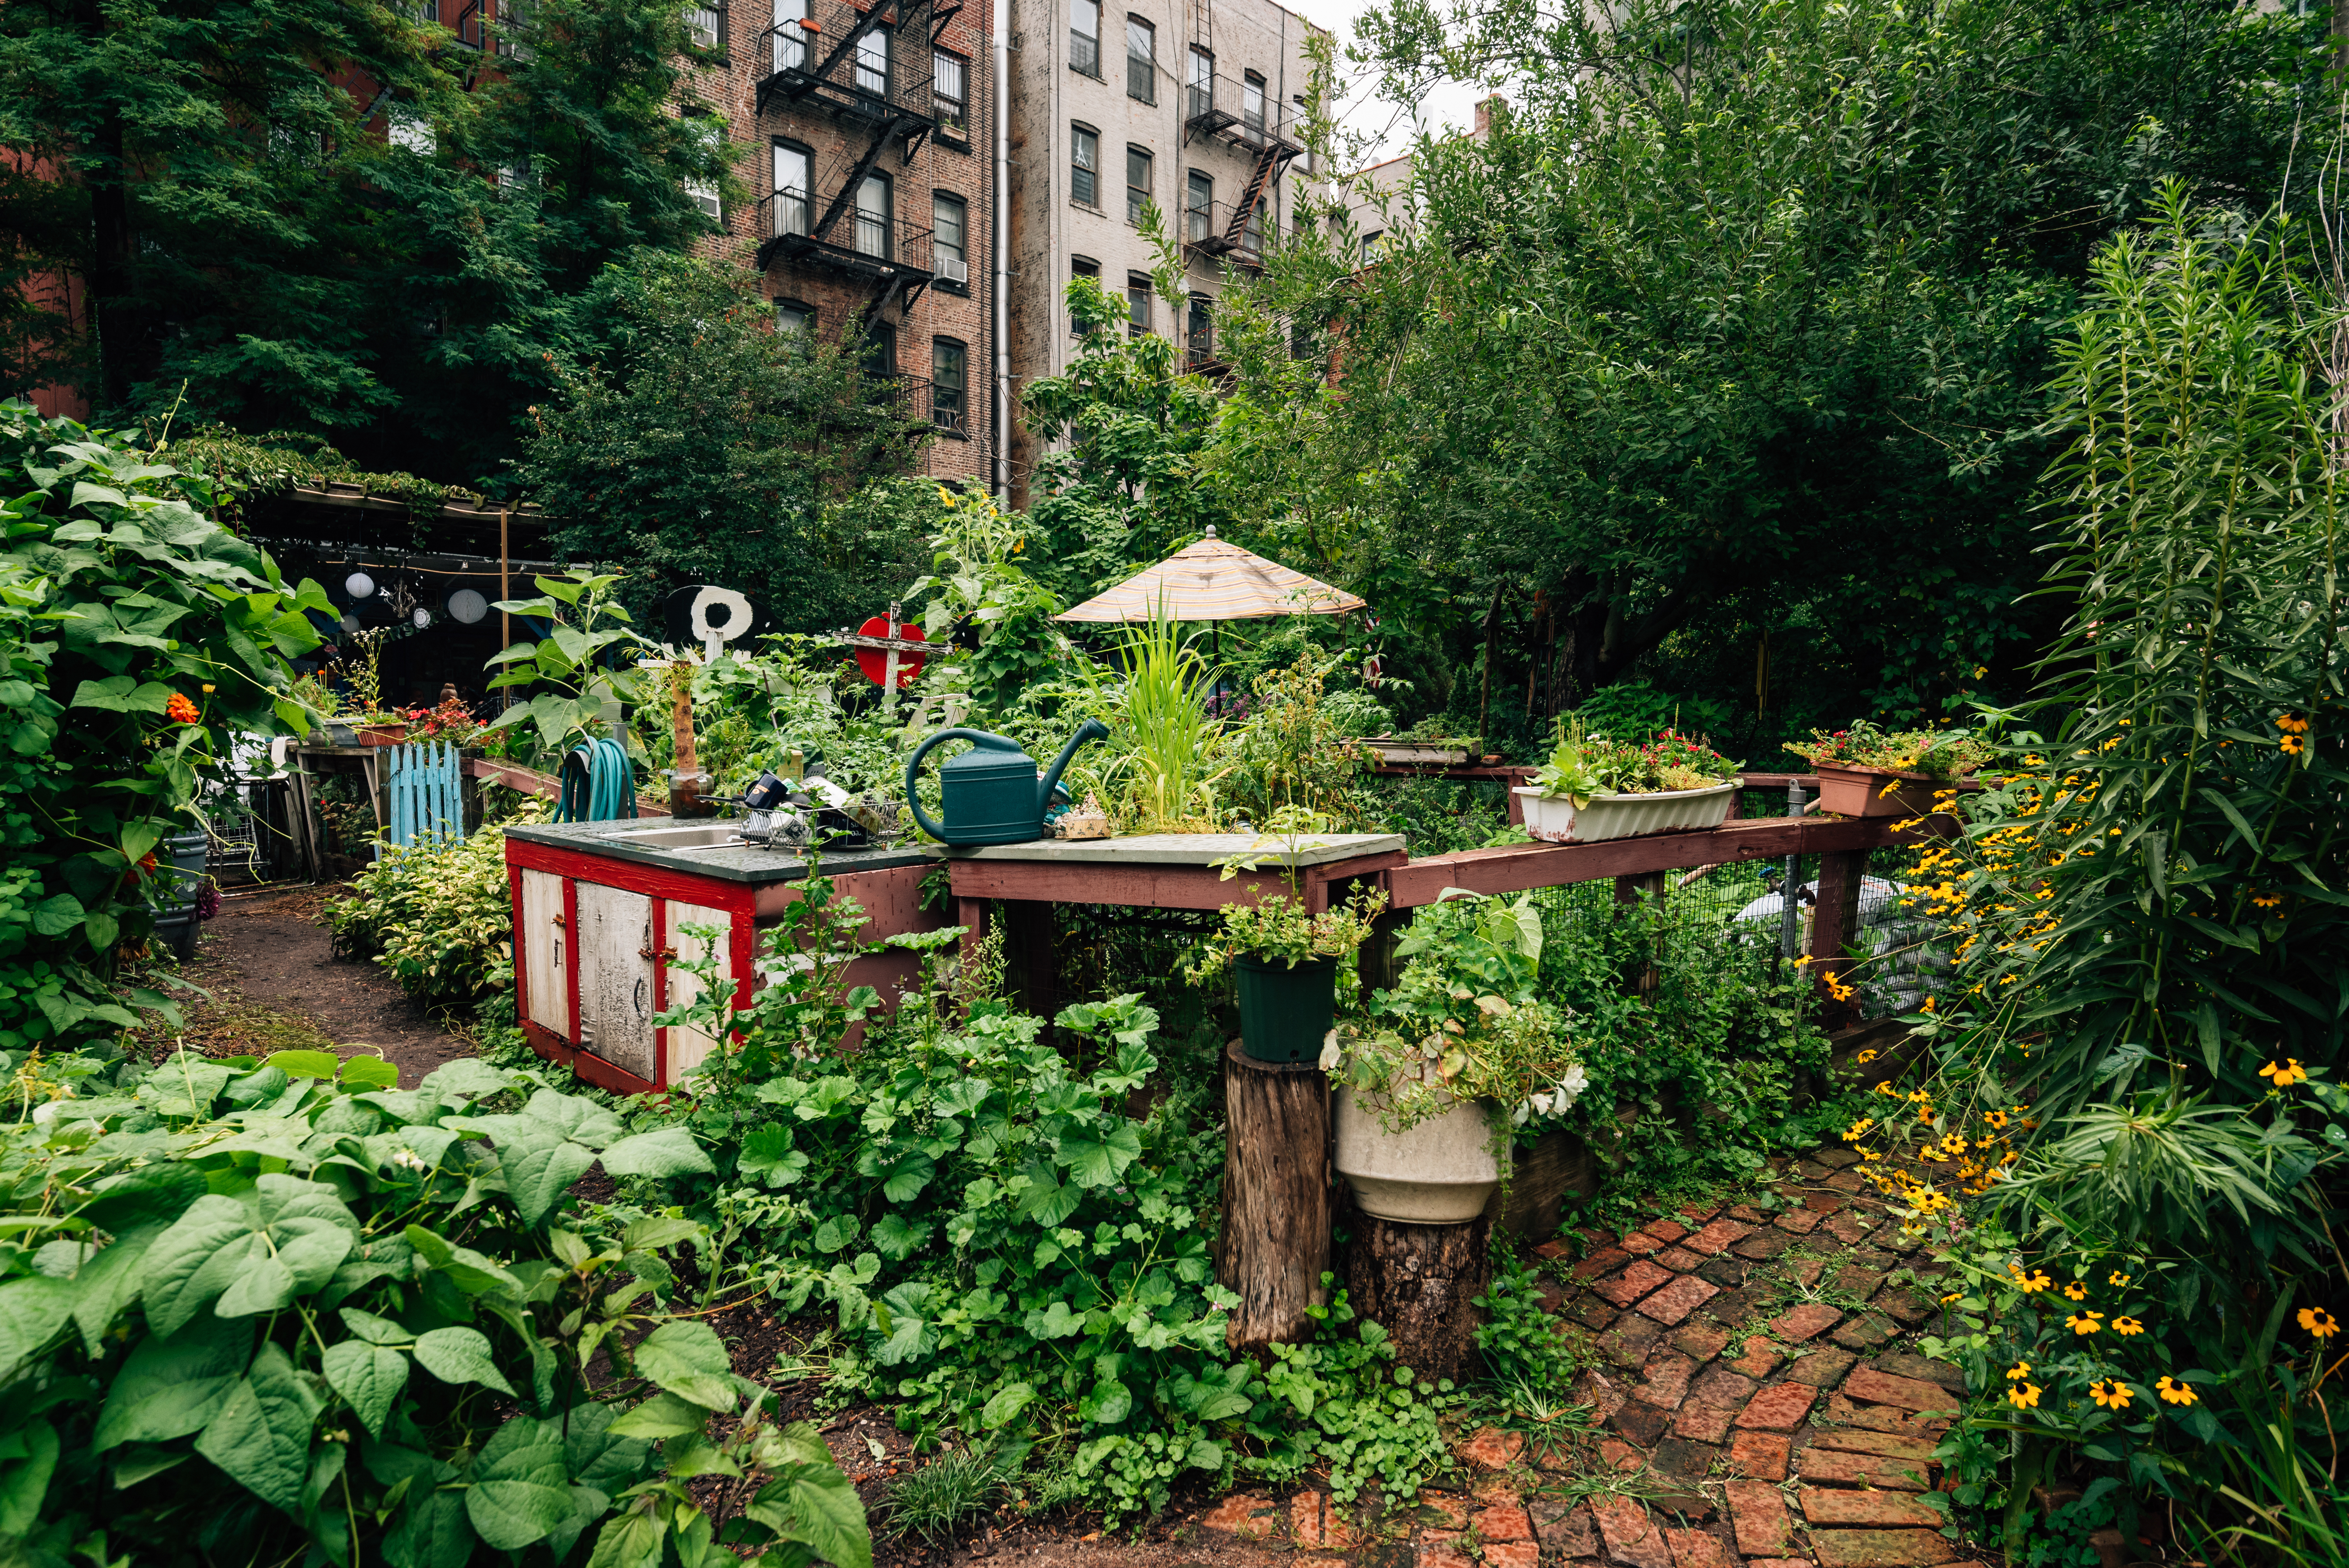 A garden lush with trees, leafy bushes, and flower beds in Manhattan.